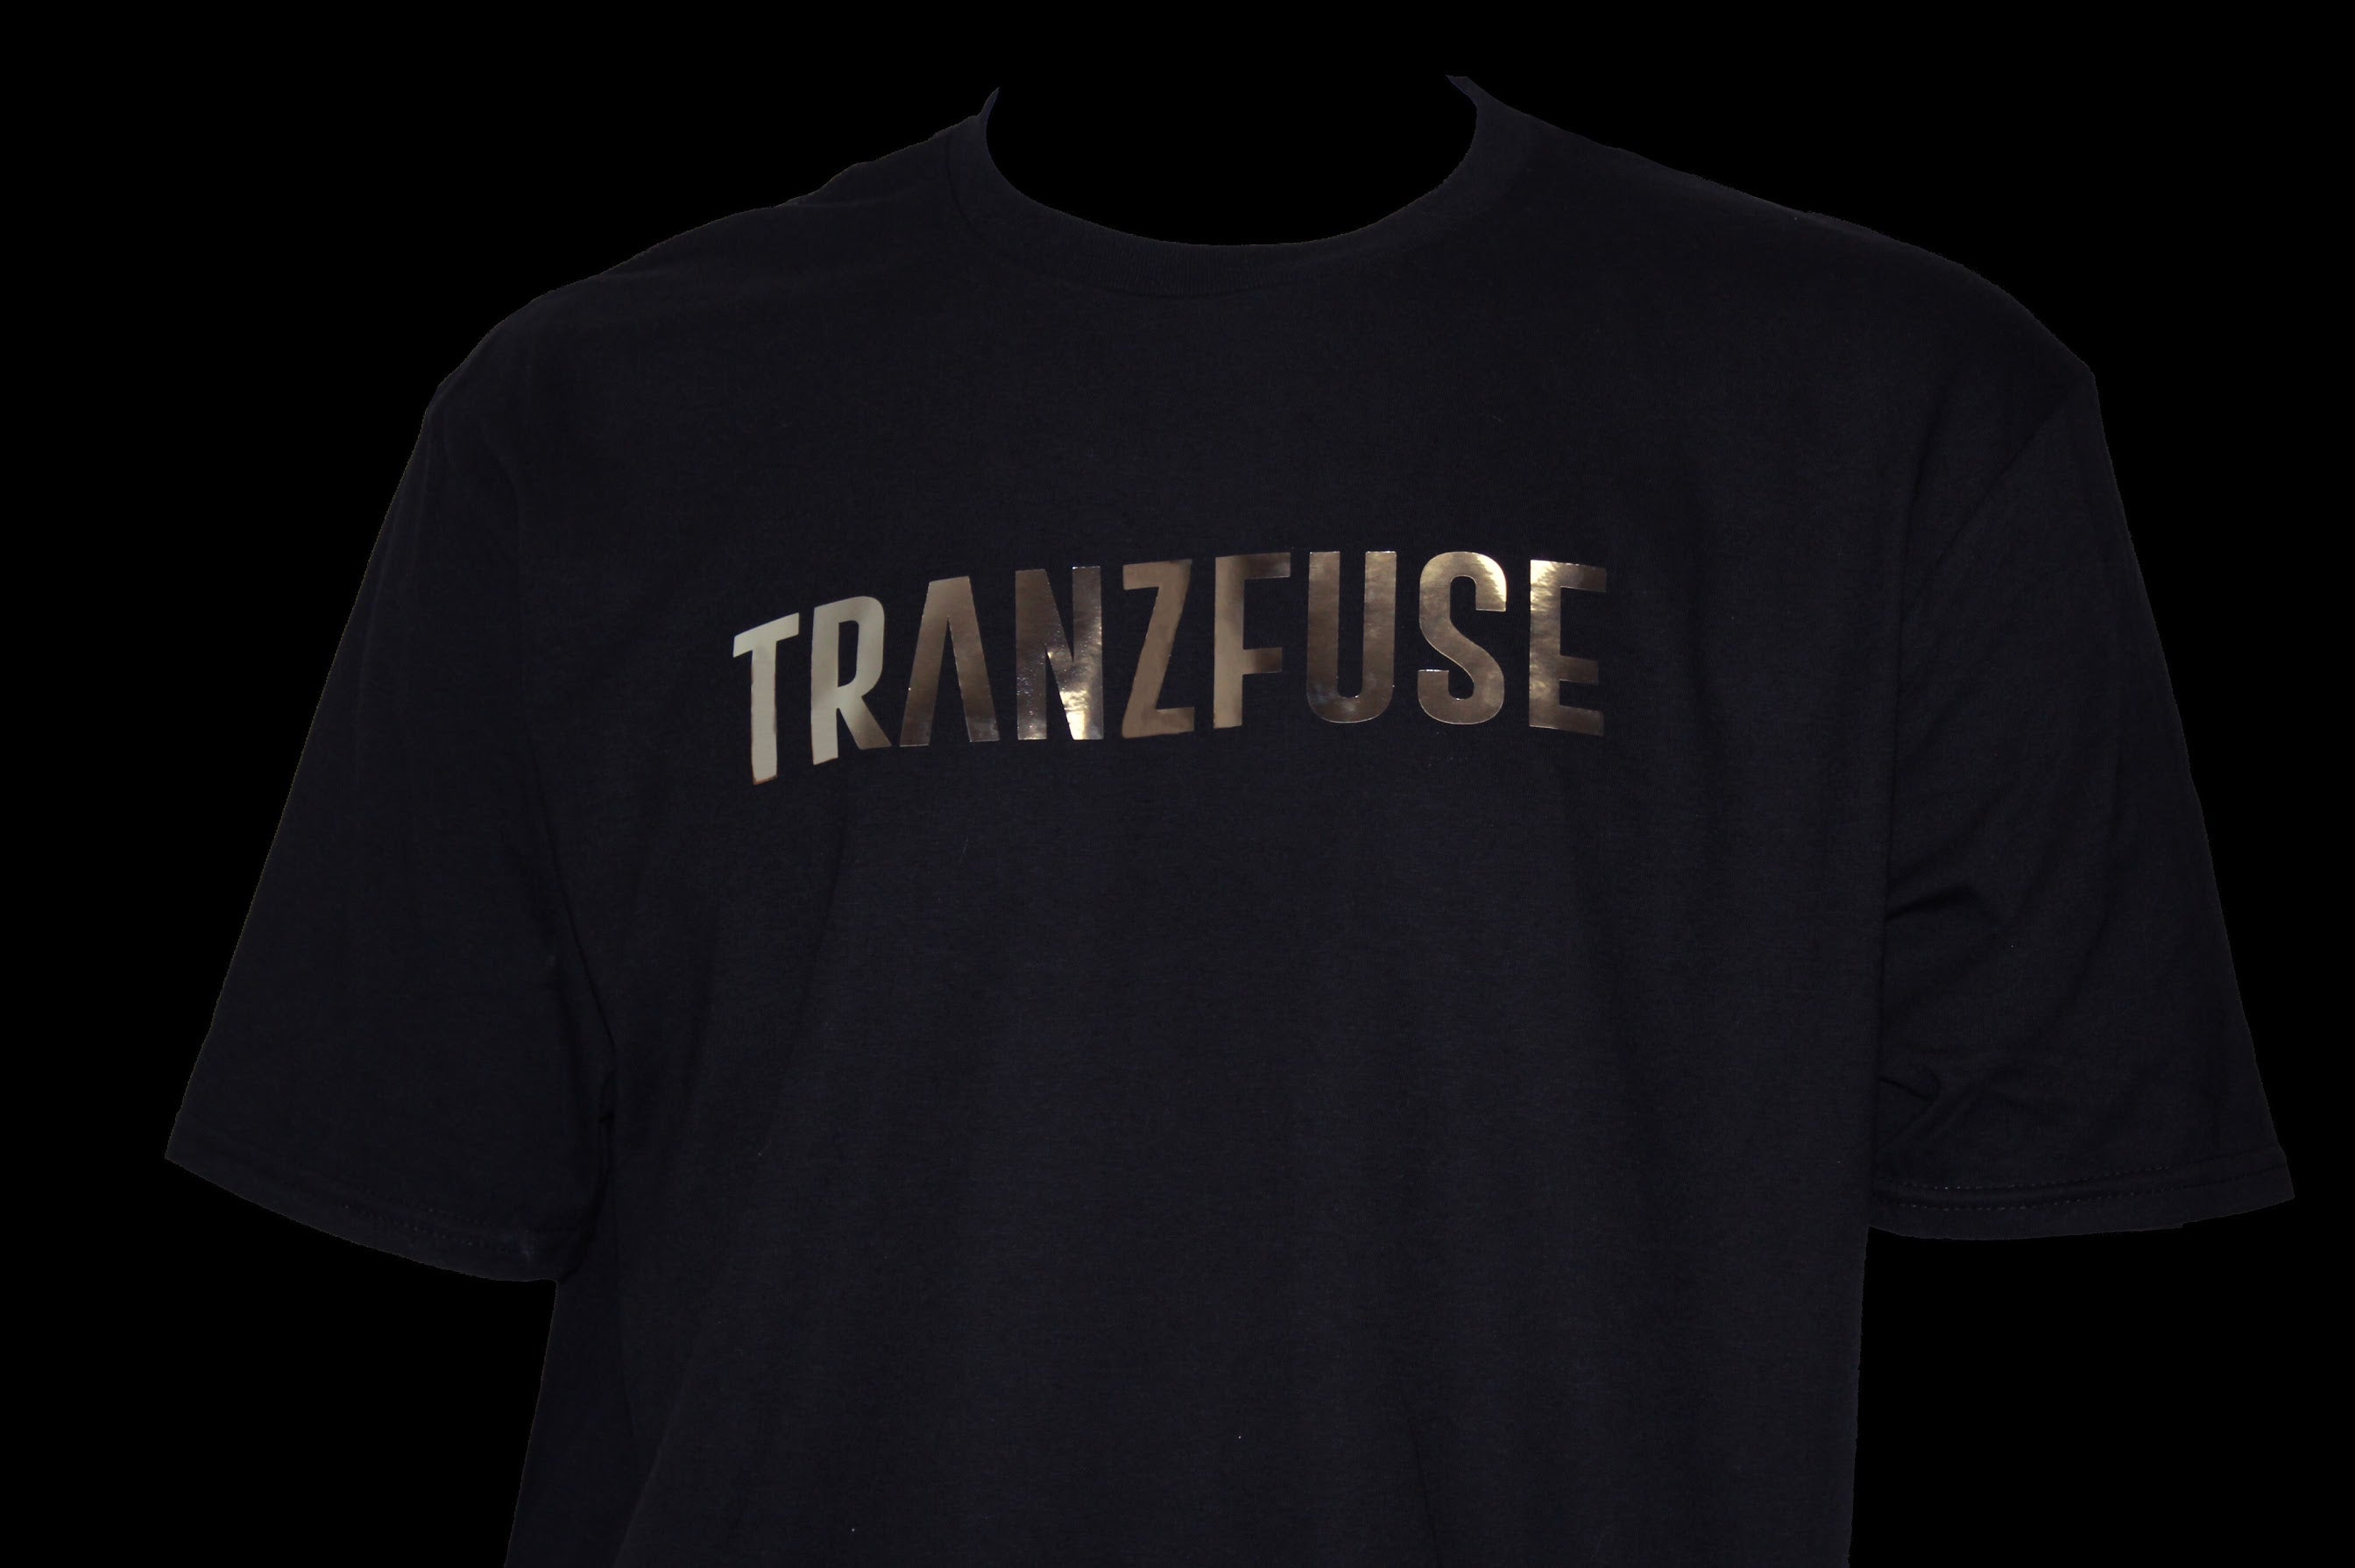 TRANZFUSE TANK TOP (LIMITED)